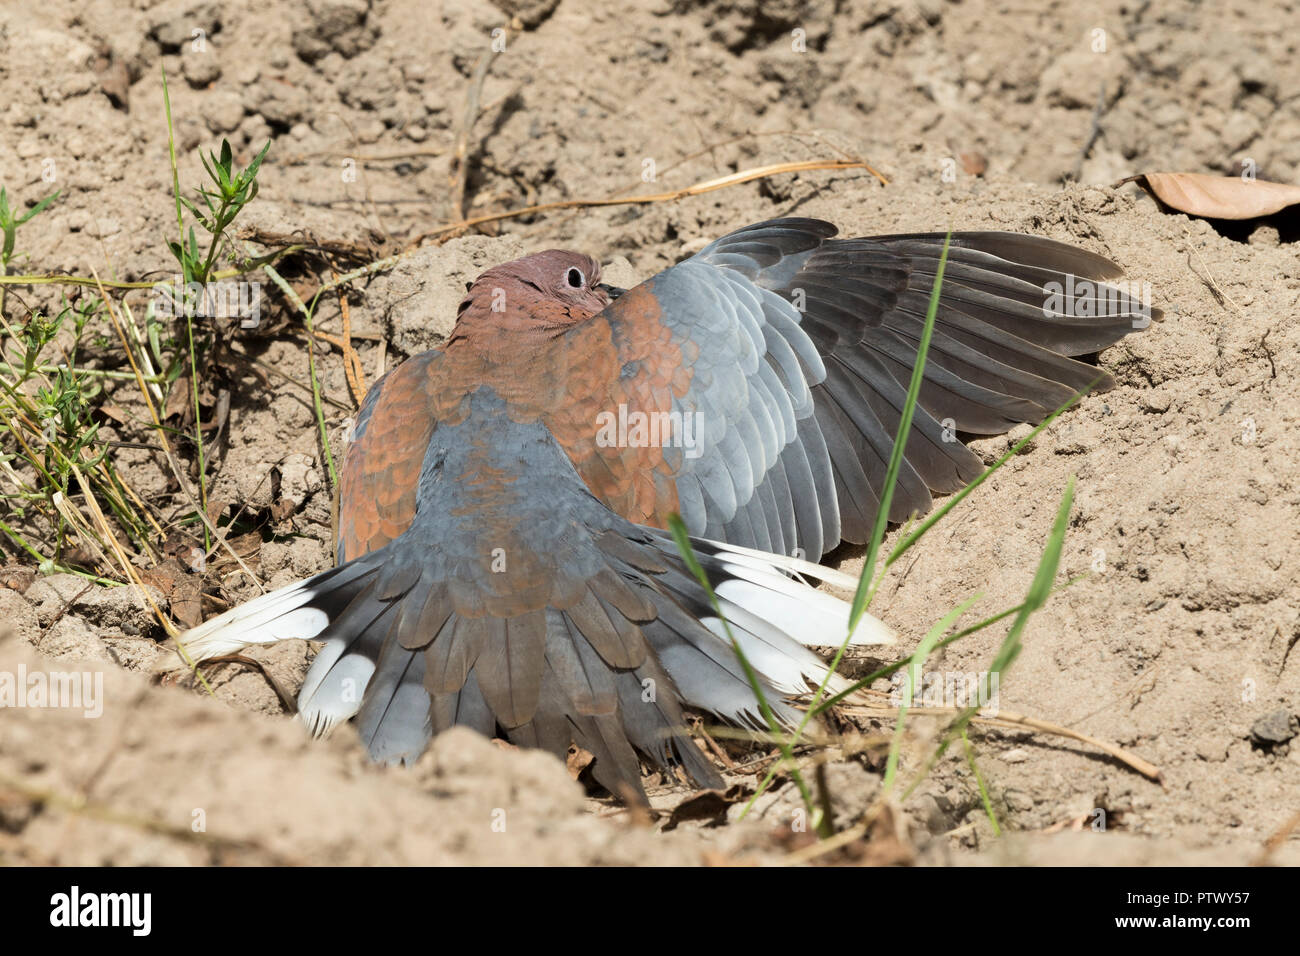 Laughing dove Streptopelia senegalensis, adult, sunbathing on sandy soil, Kotu Bridge, Banjul, The Gambia, November Stock Photo